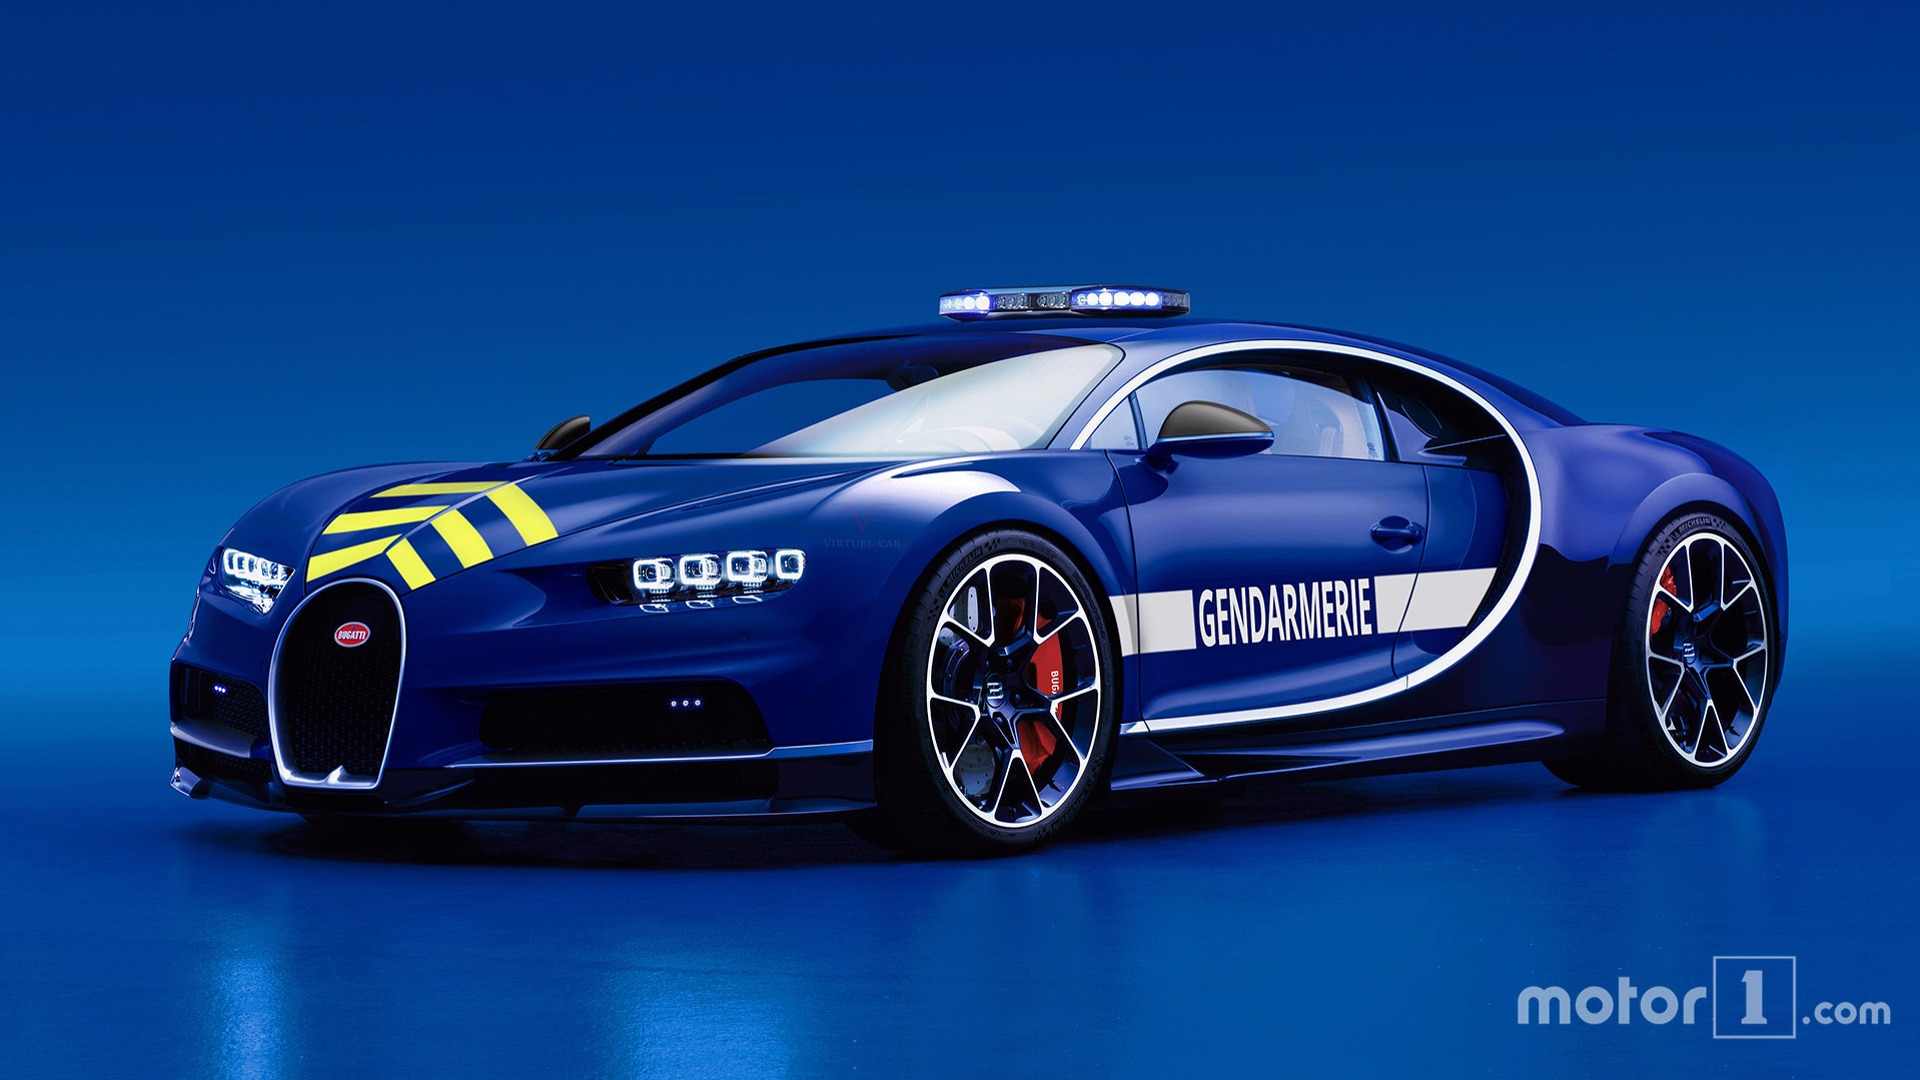 Bugatti Chiron Gendarmerie : pull over french police gifted a bugatti chiron ~ Medecine-chirurgie-esthetiques.com Avis de Voitures